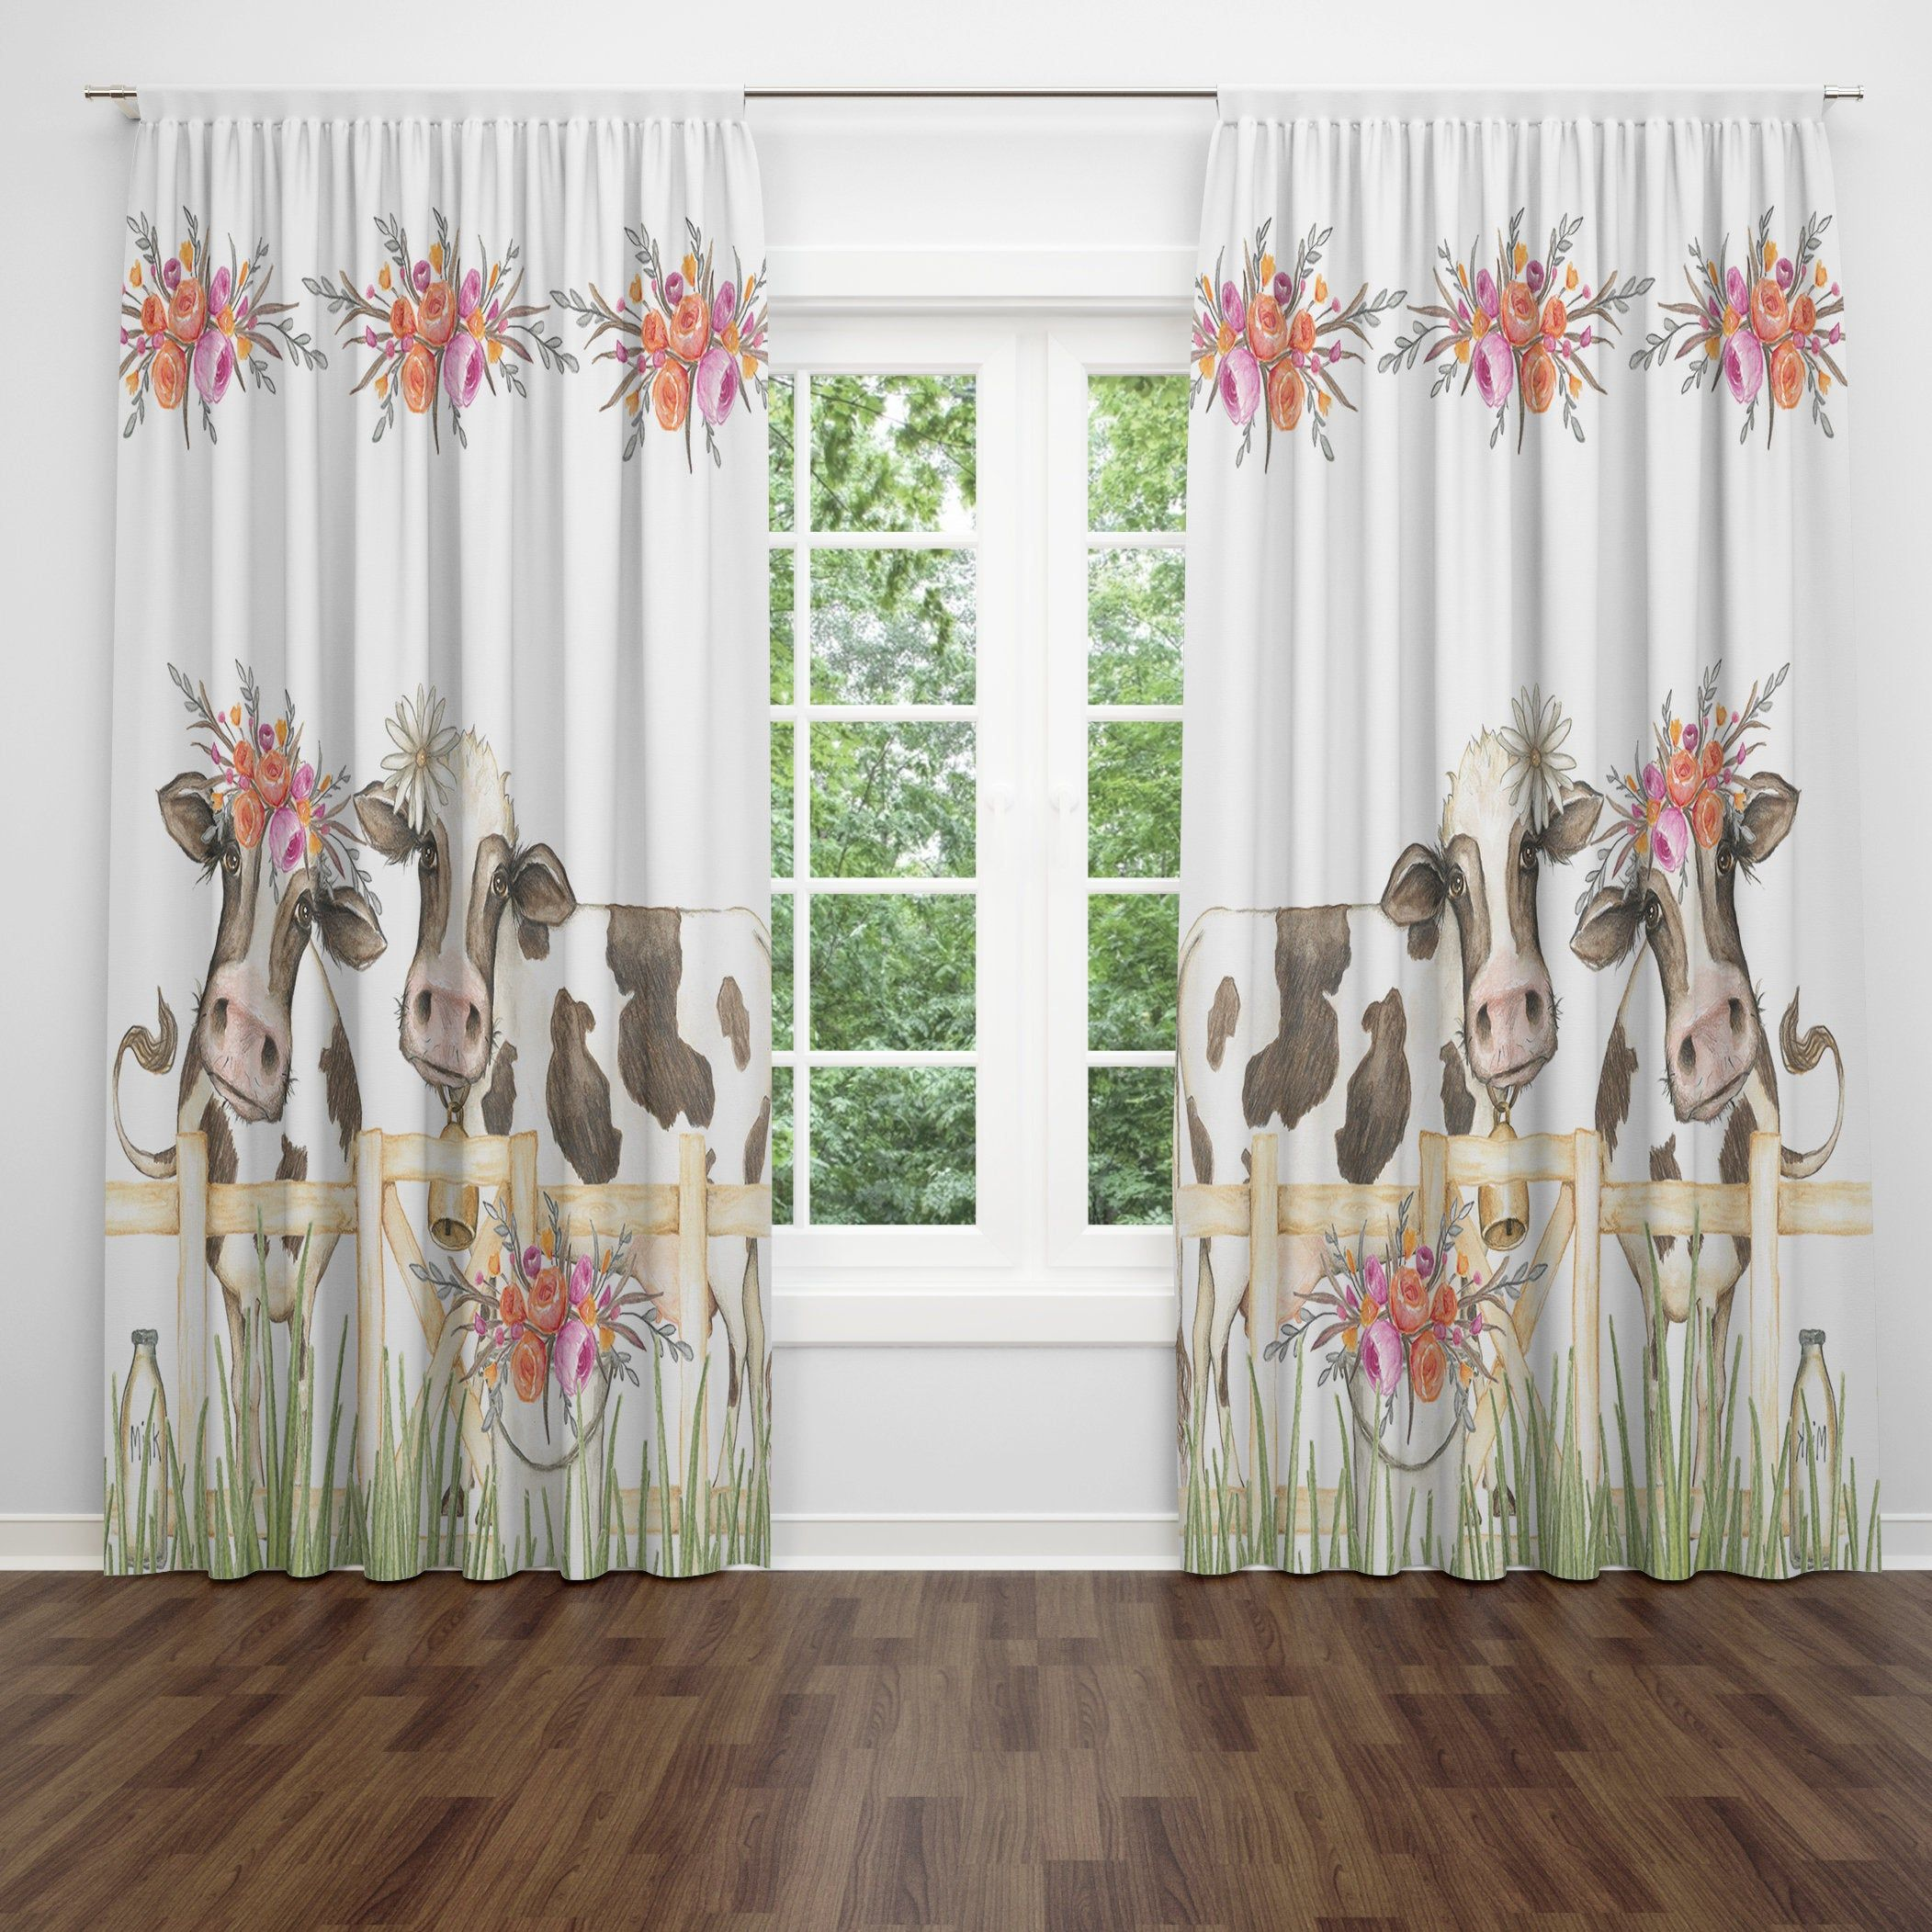 Cow window curtains farmhouse valance in 2020 vintage